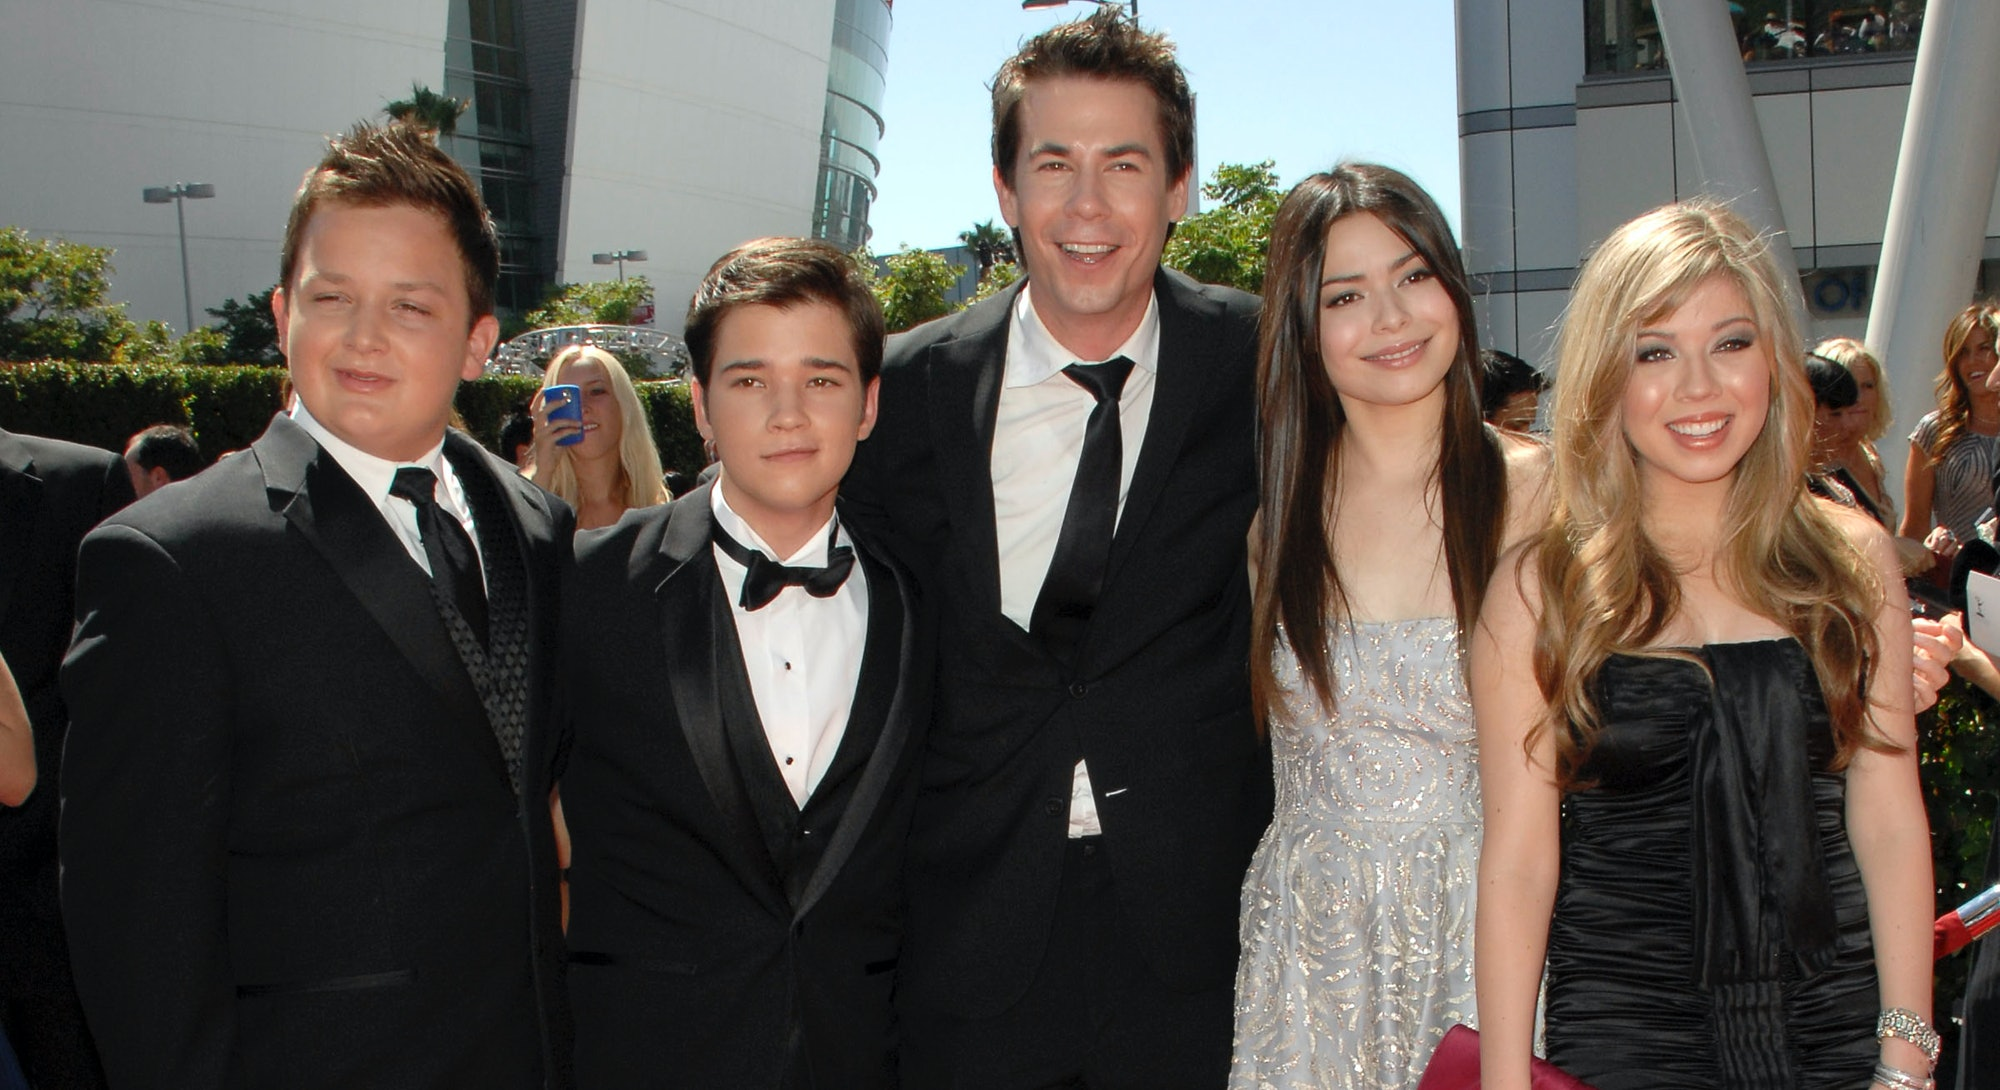 The cast of 'iCarly' is reuniting for a revival at Paramount+. Photo via Patrick McMullan/Patrick Mc...